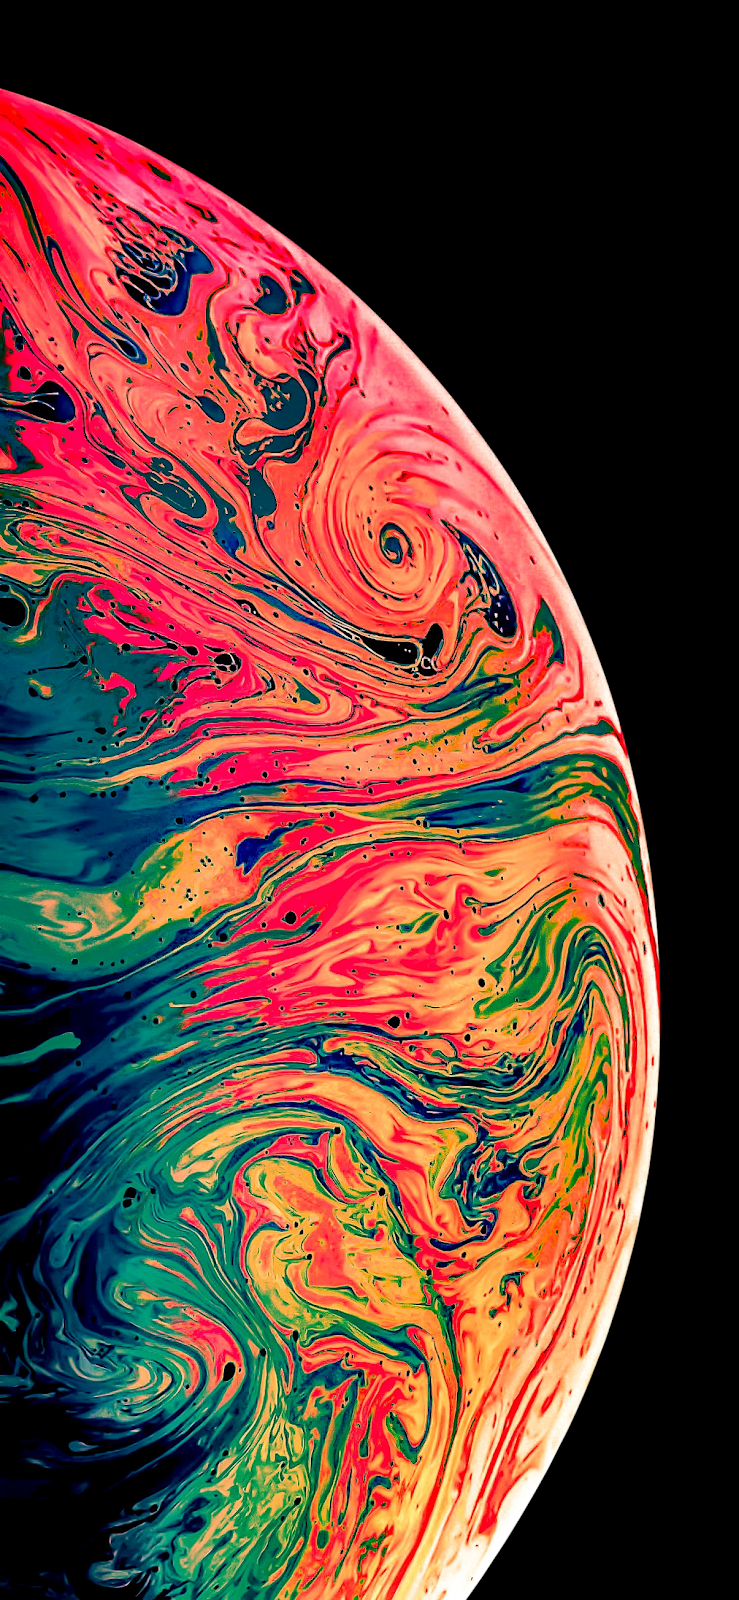 Iphone Xs Max Modd Dark By Ar72014 Nature Iphone Wallpaper Iphone Homescreen Wallpaper Moving Wallpaper Iphone